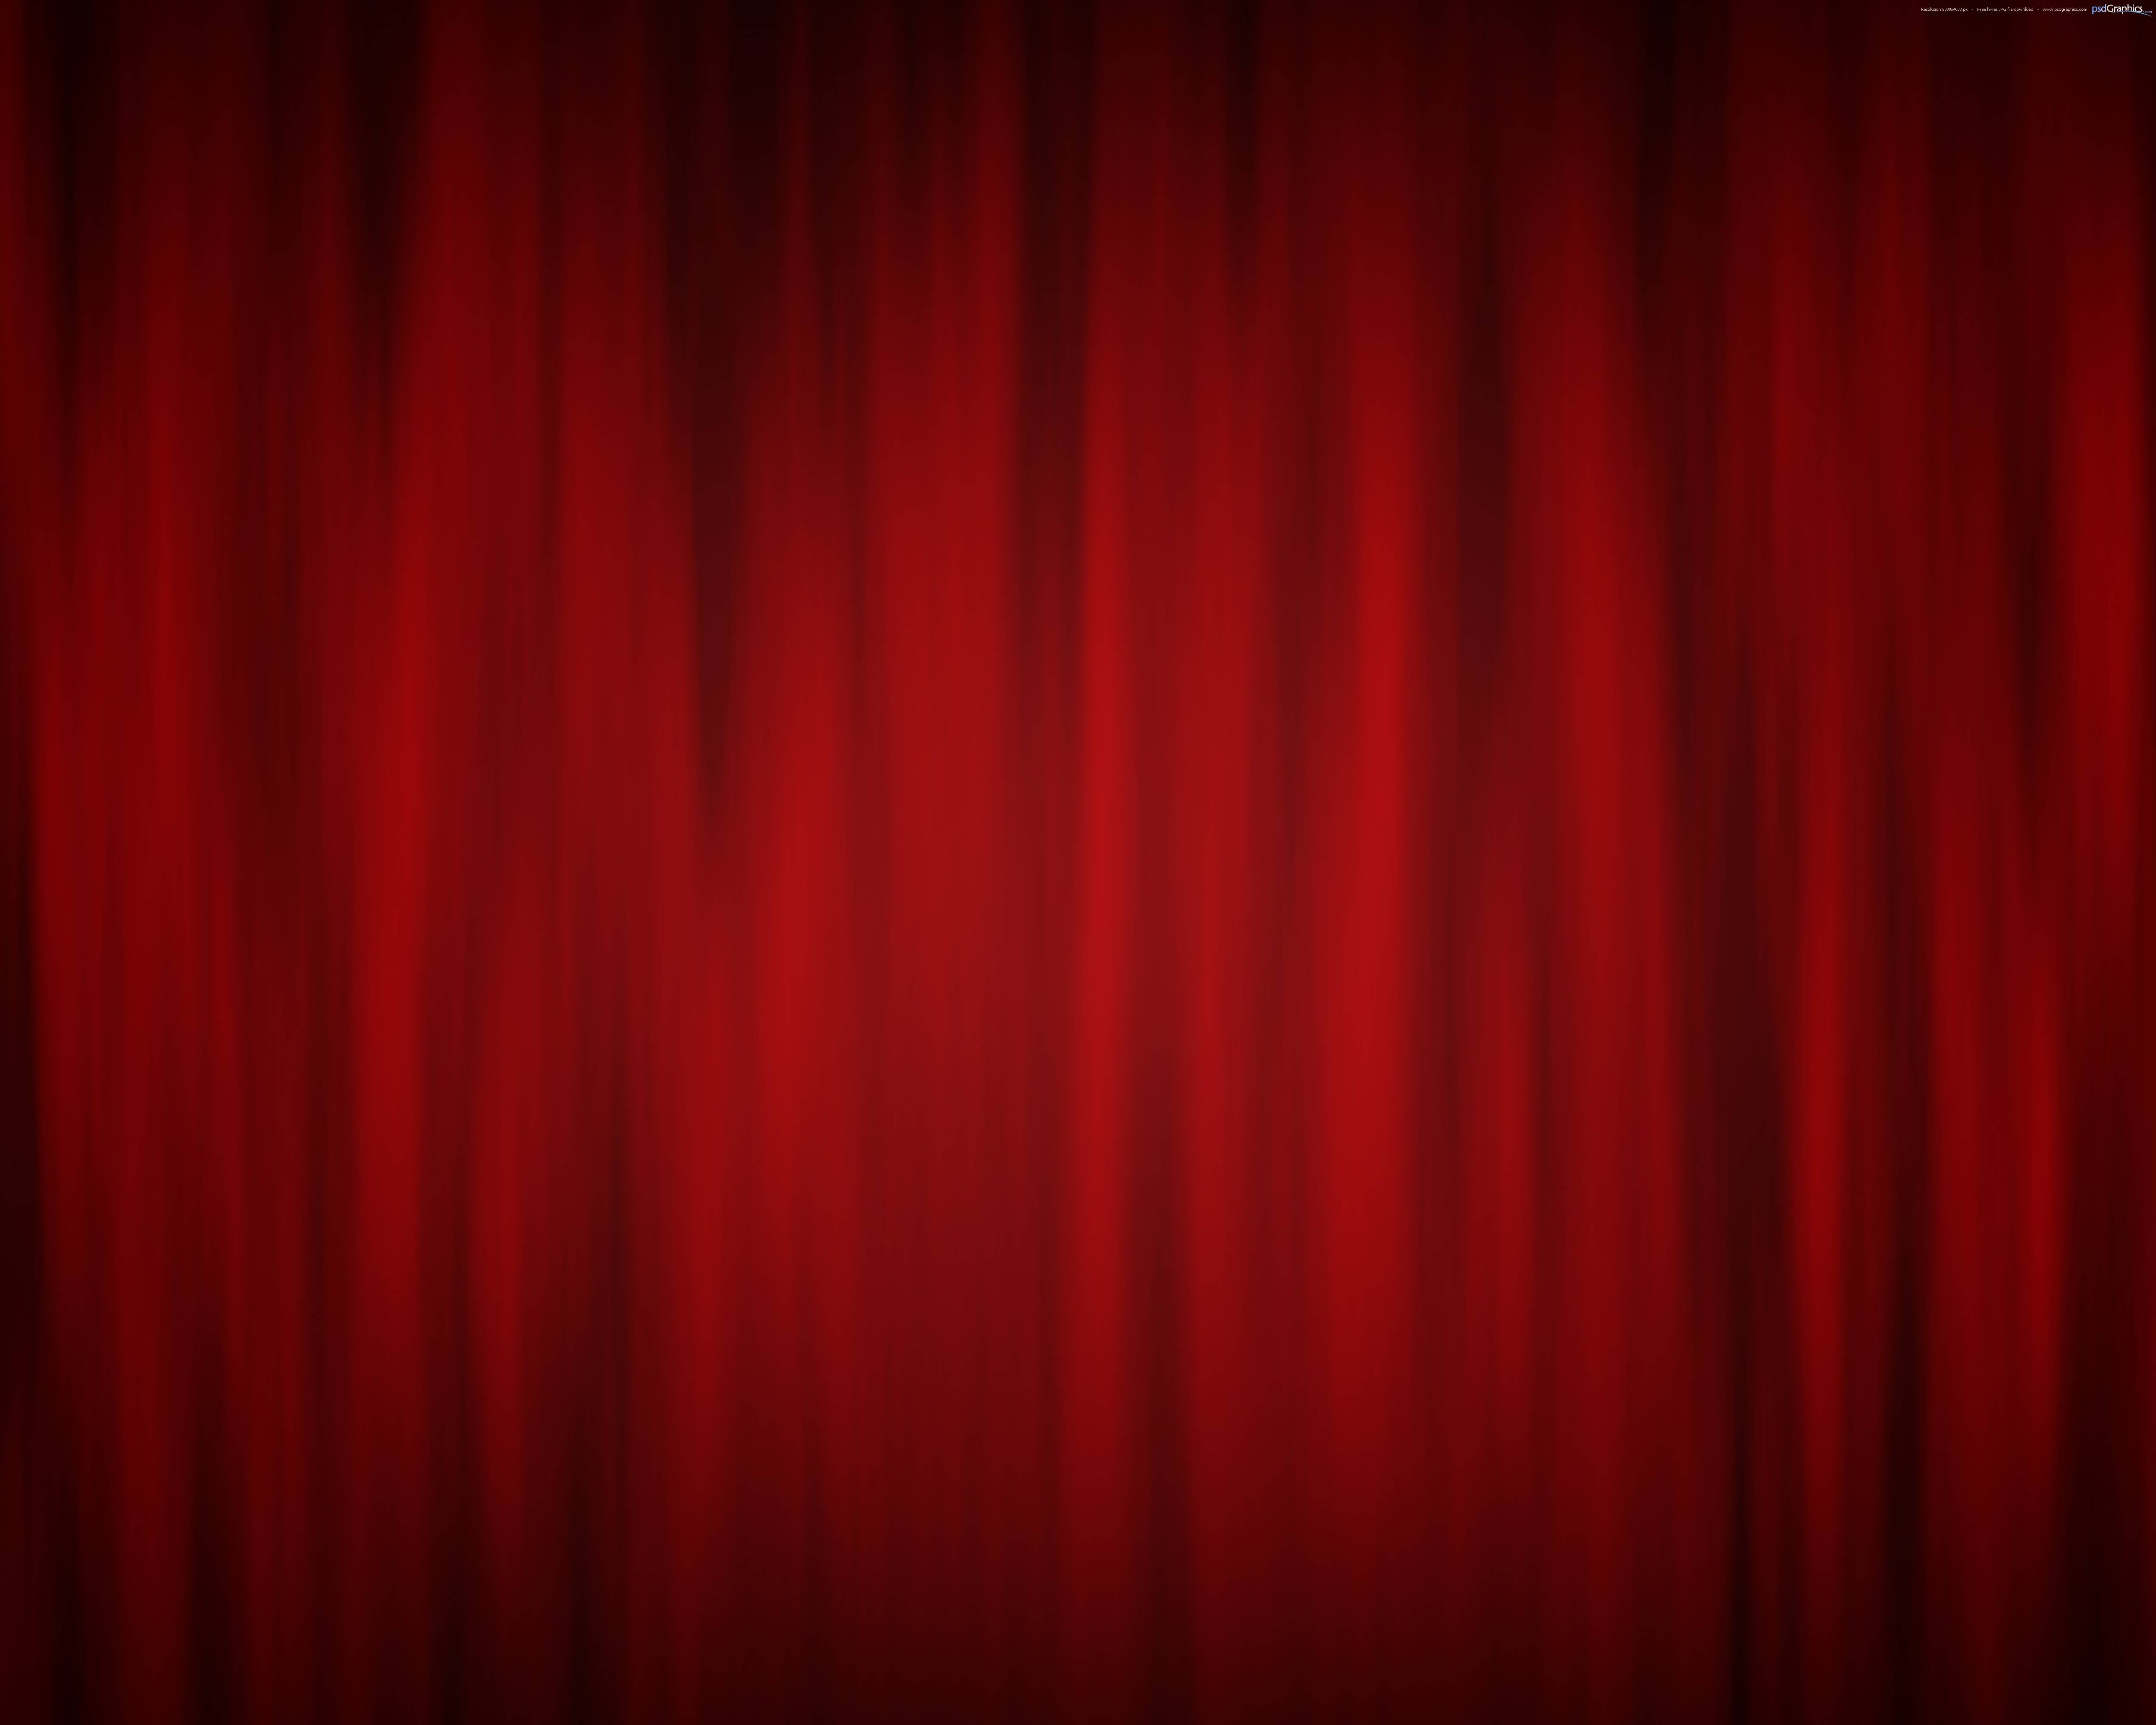 Cheap black stage curtains - Red Curtain Background Theatre Stage Psdgraphics